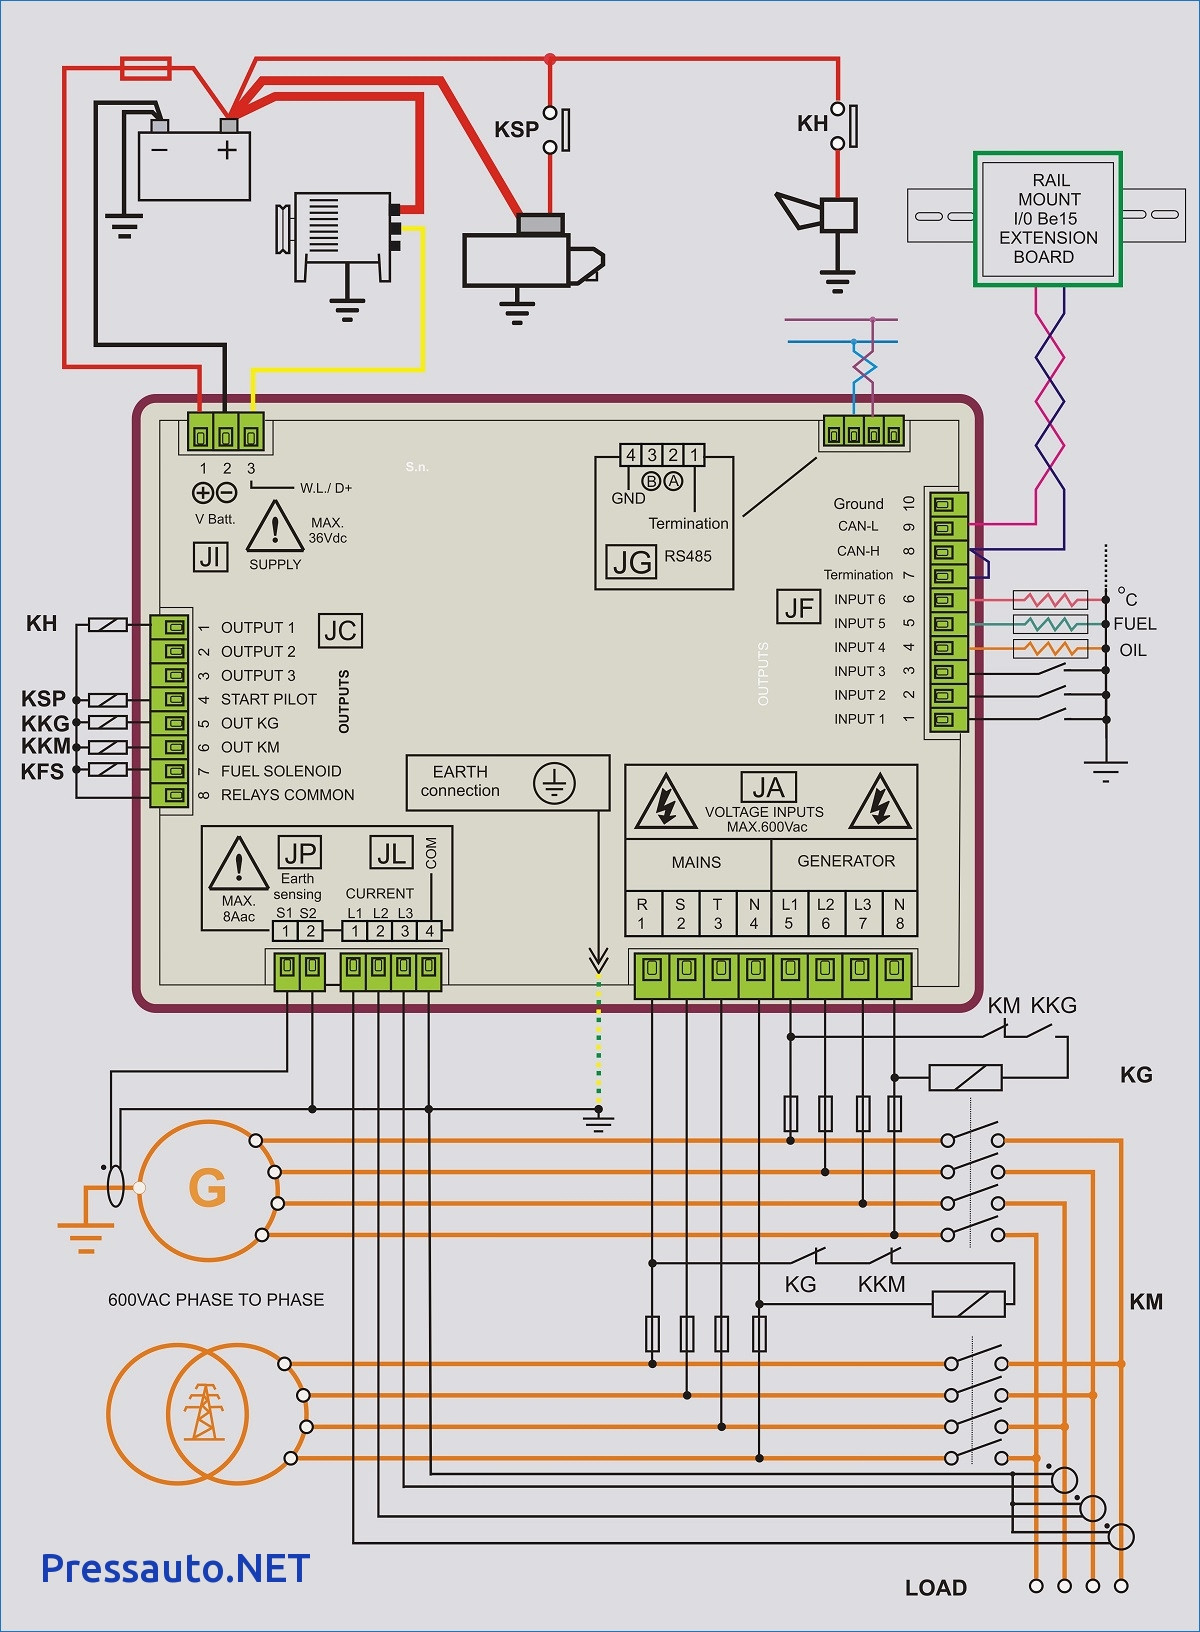 Generator Transfer Switch Wiring Diagram Collection on